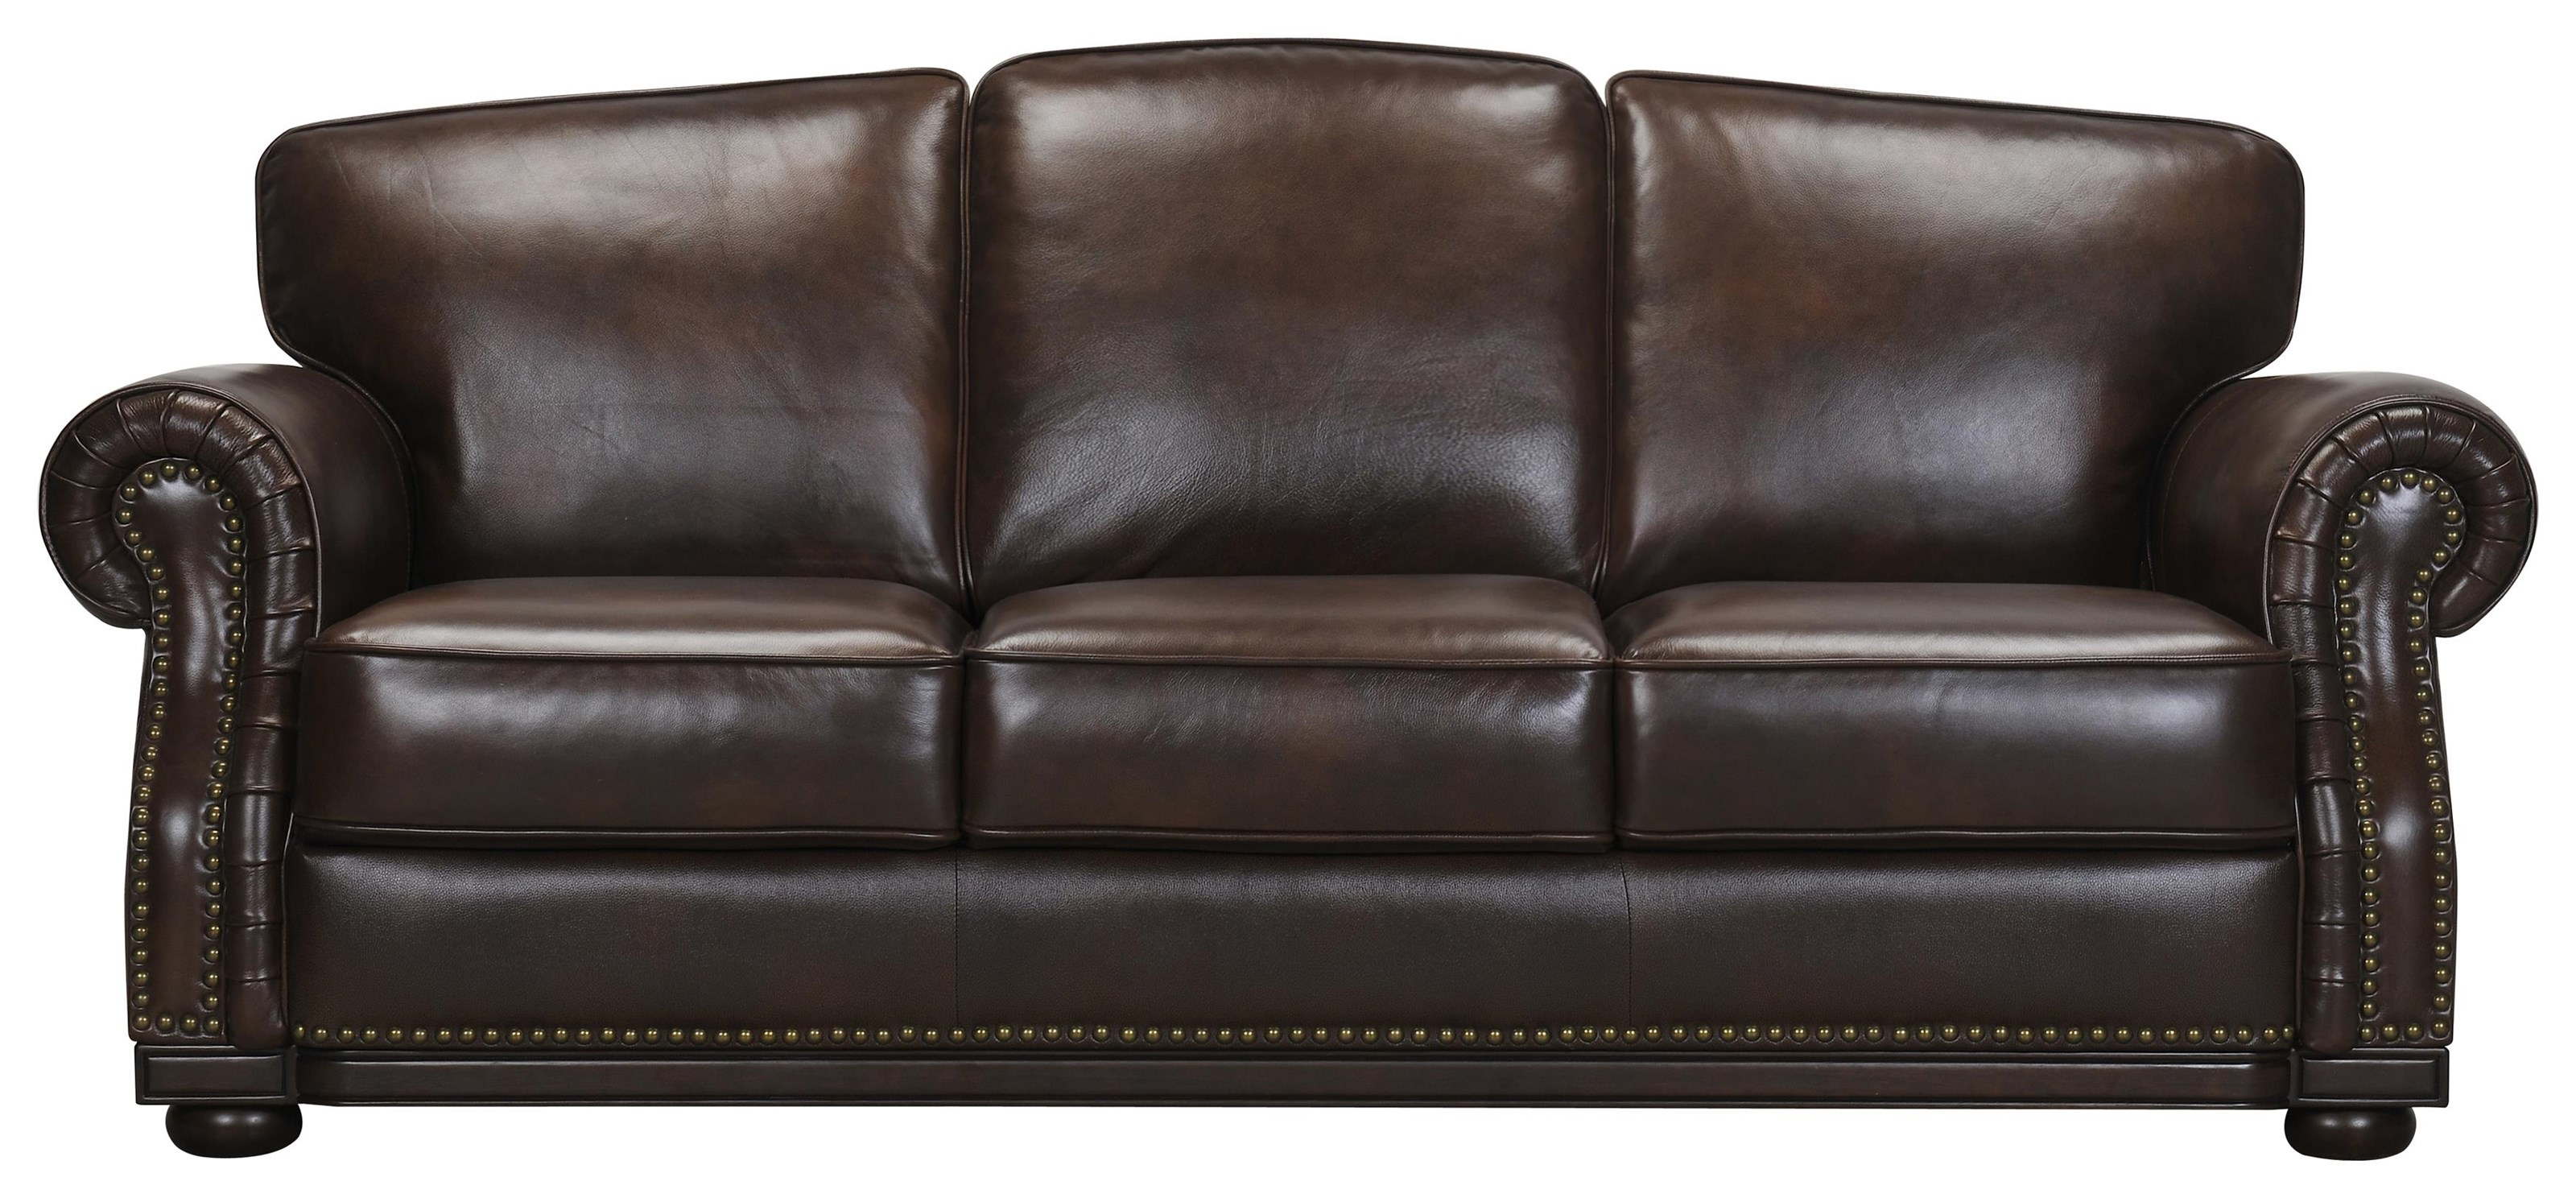 3110 Leather Match Sofa by Violino at Darvin Furniture